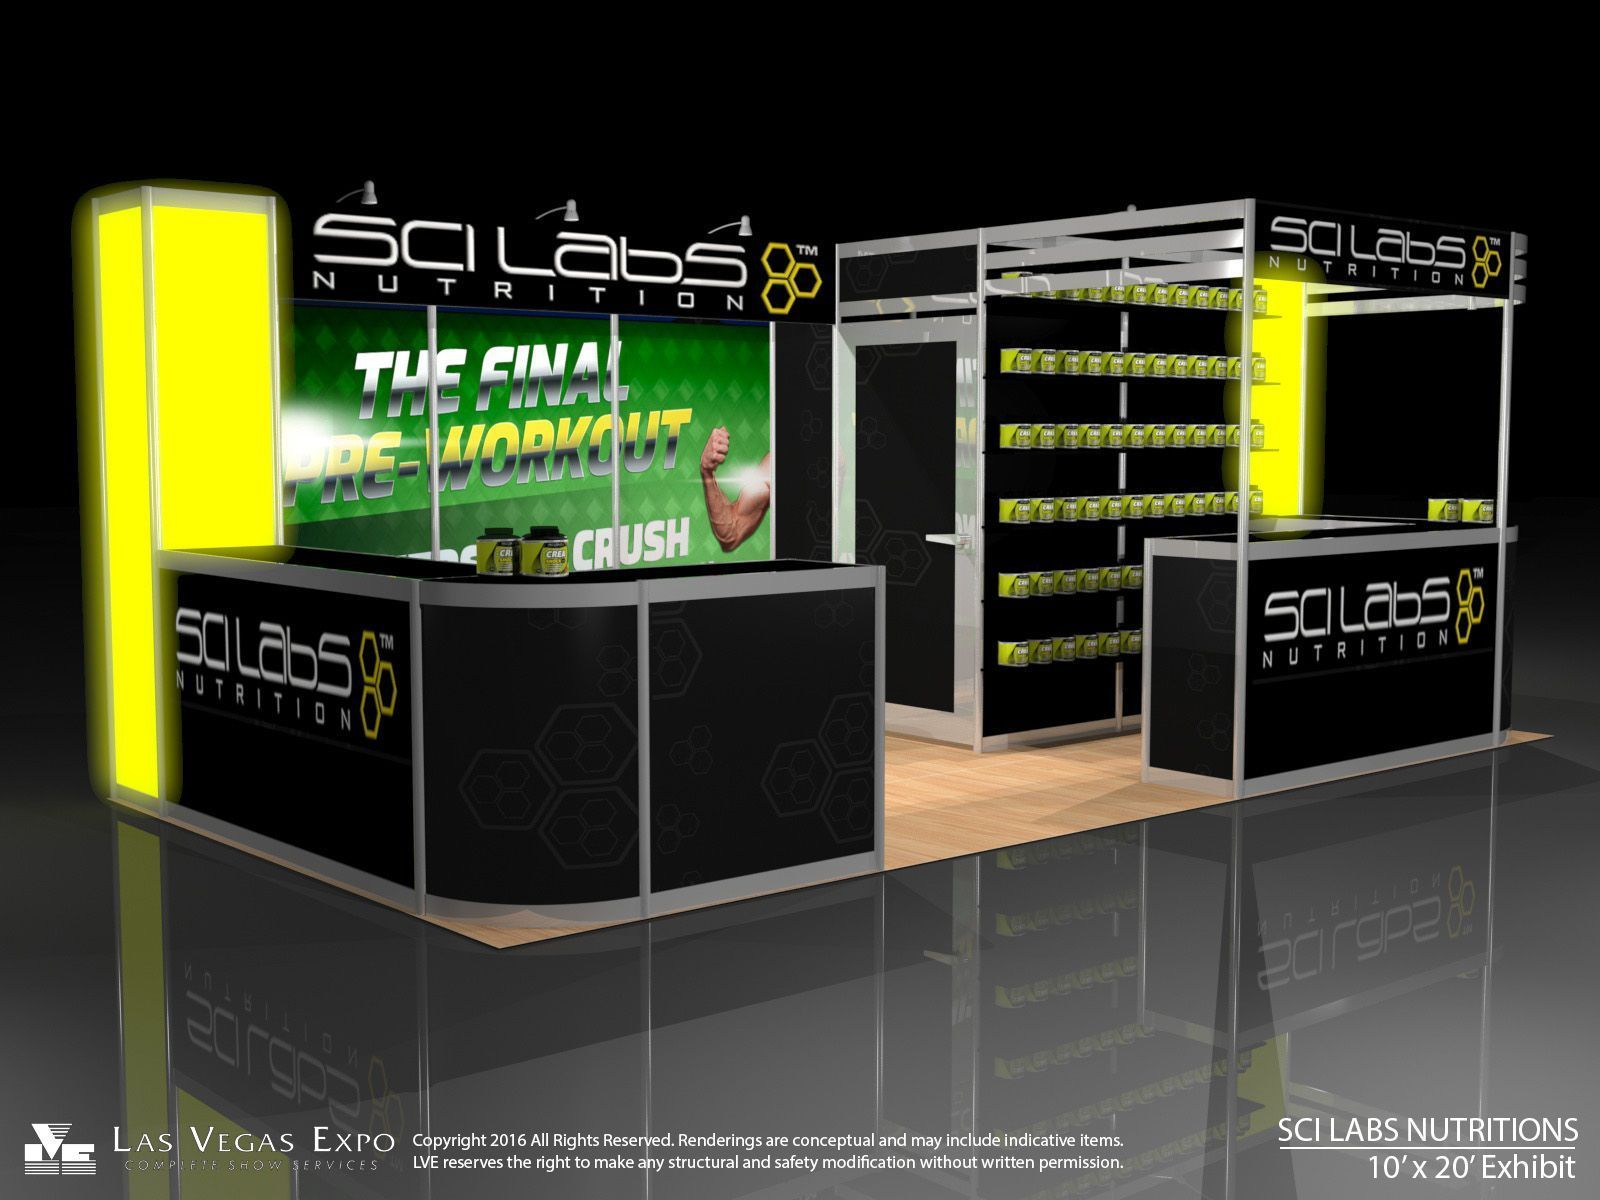 Scilabs Nutrition at Mr Olympia - Las Vegas Expo Booth